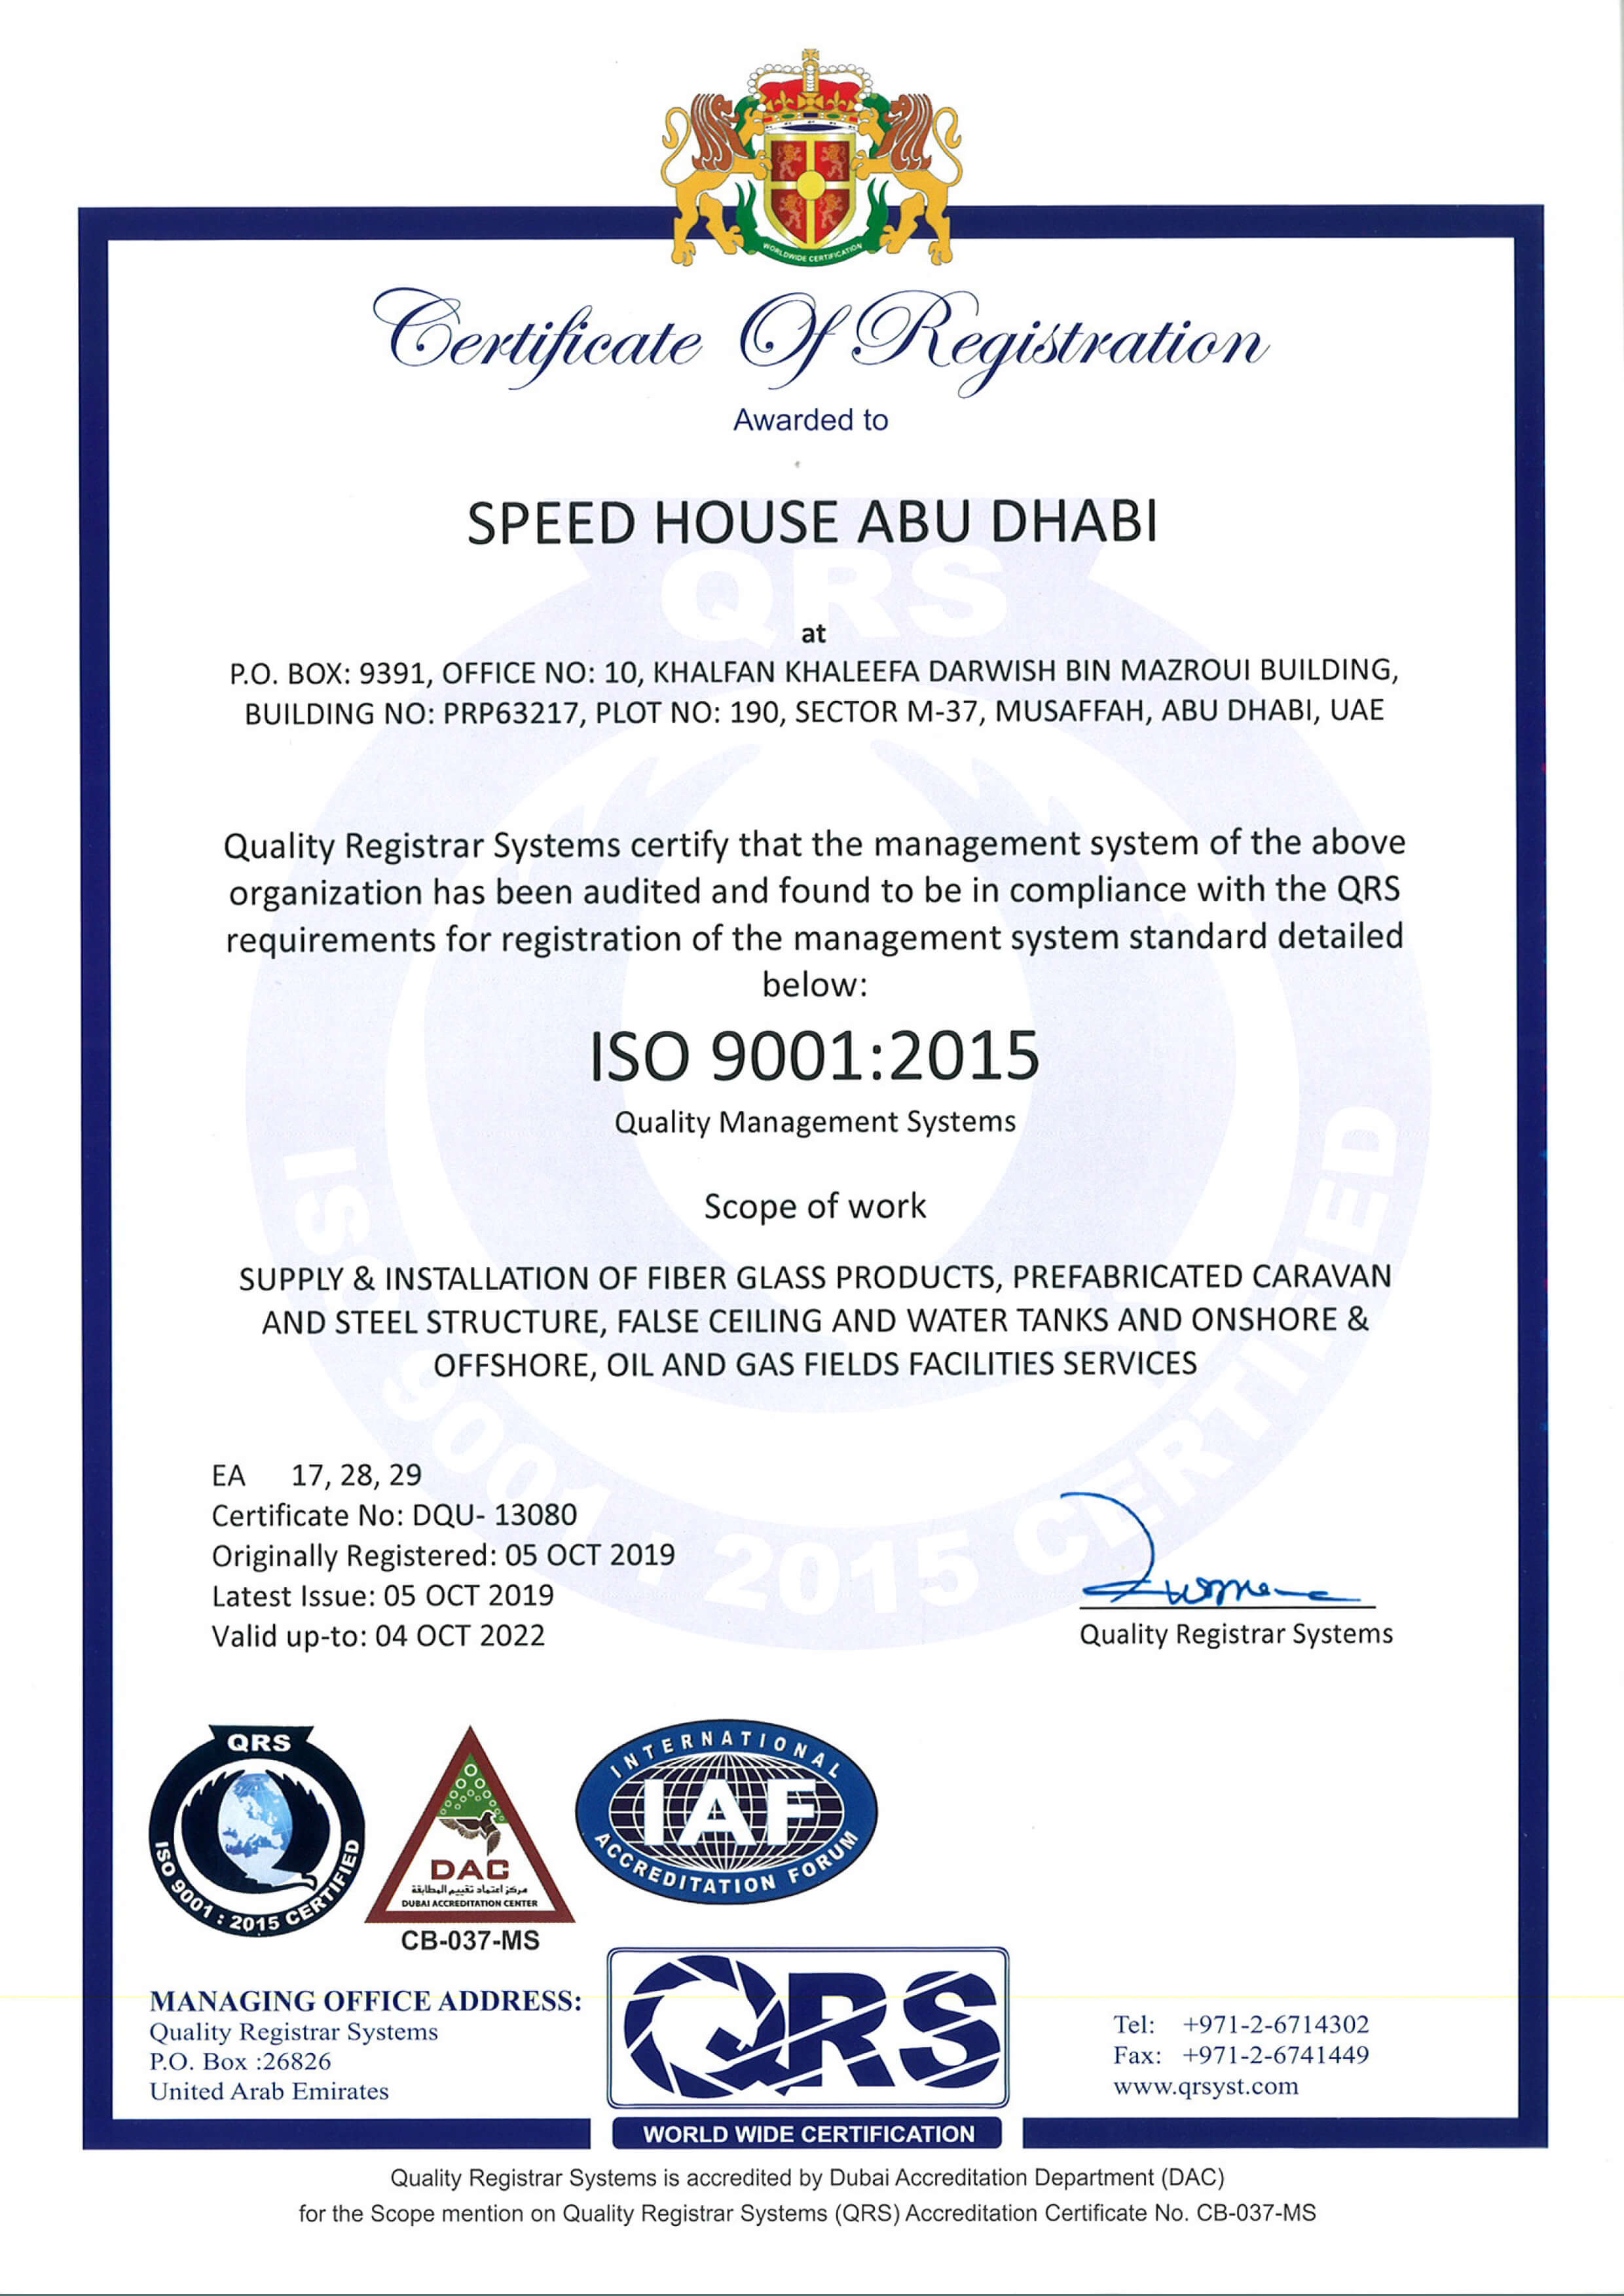 Speed House Abu Dhabi ISO 9001 Certificate